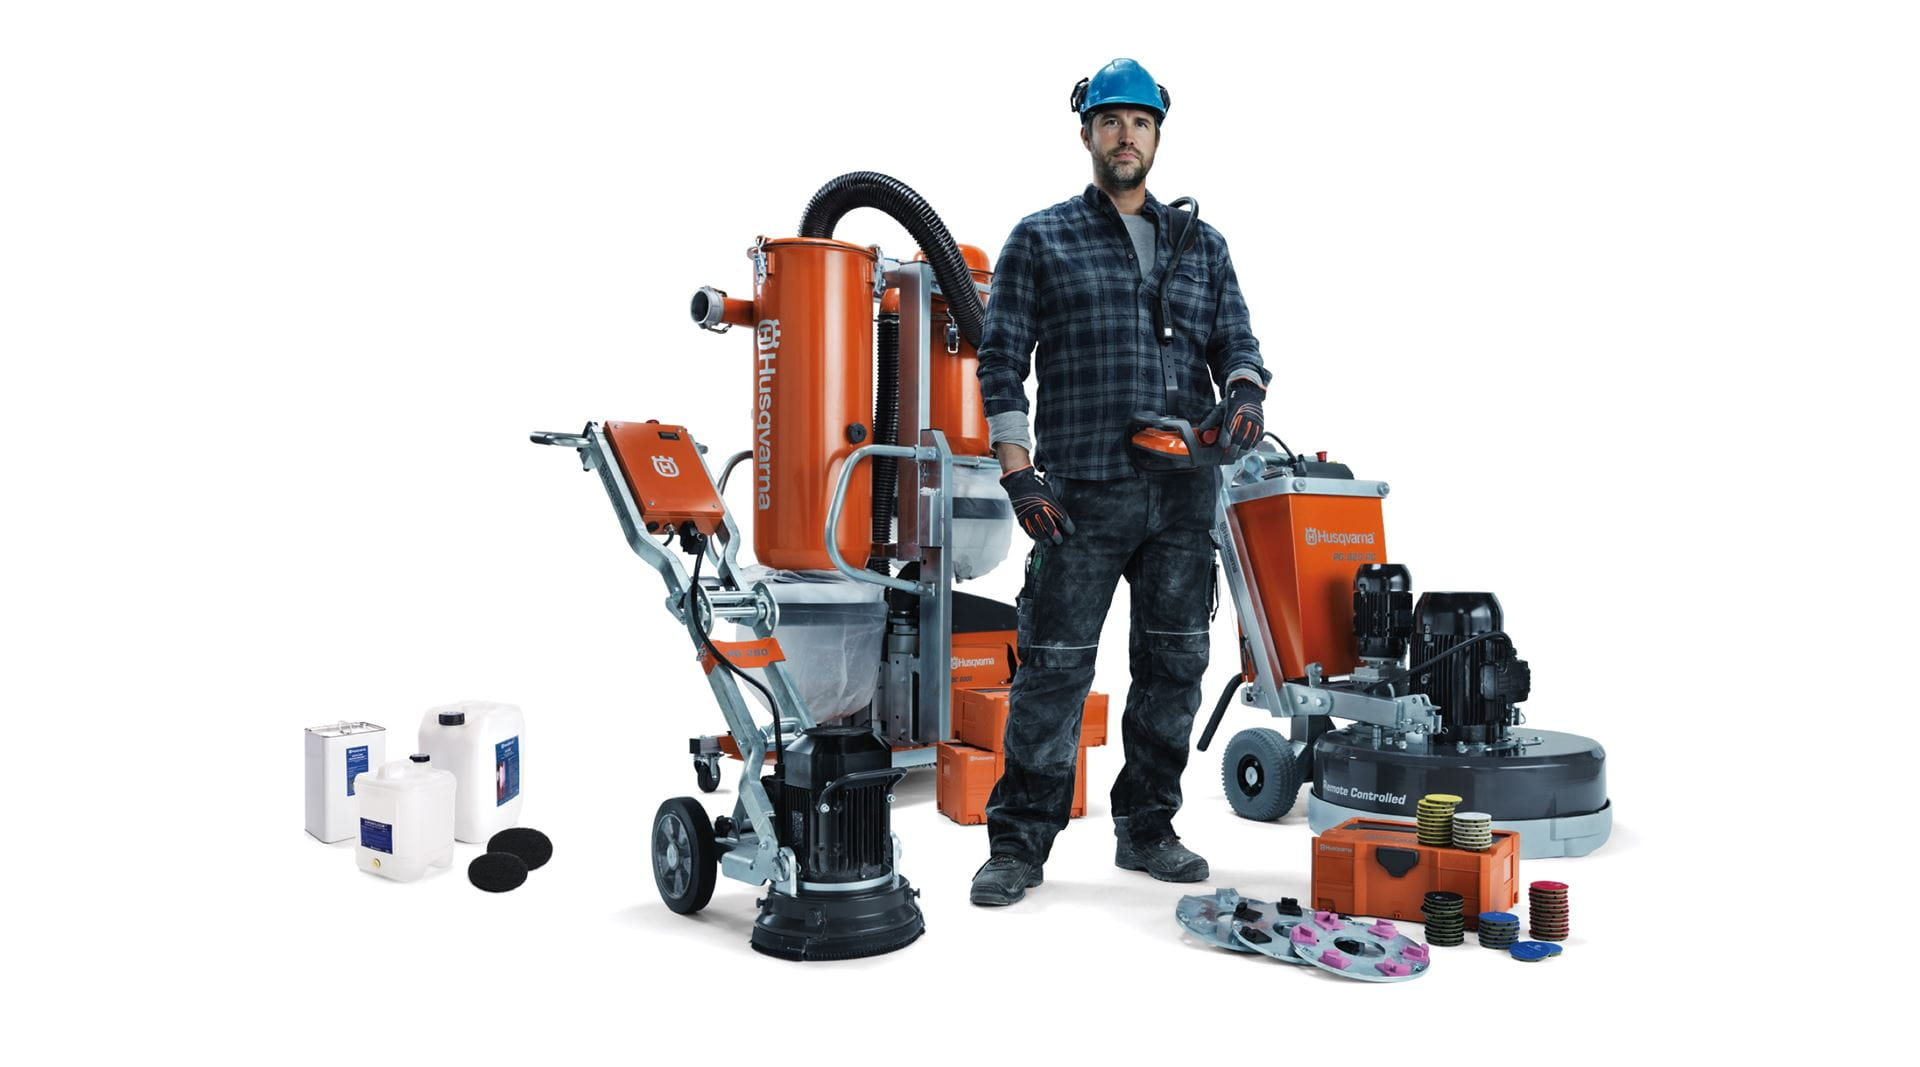 Powerful, efficient and versatile Husqvarna concrete floor grinding system that is easy to transport, set up and use.